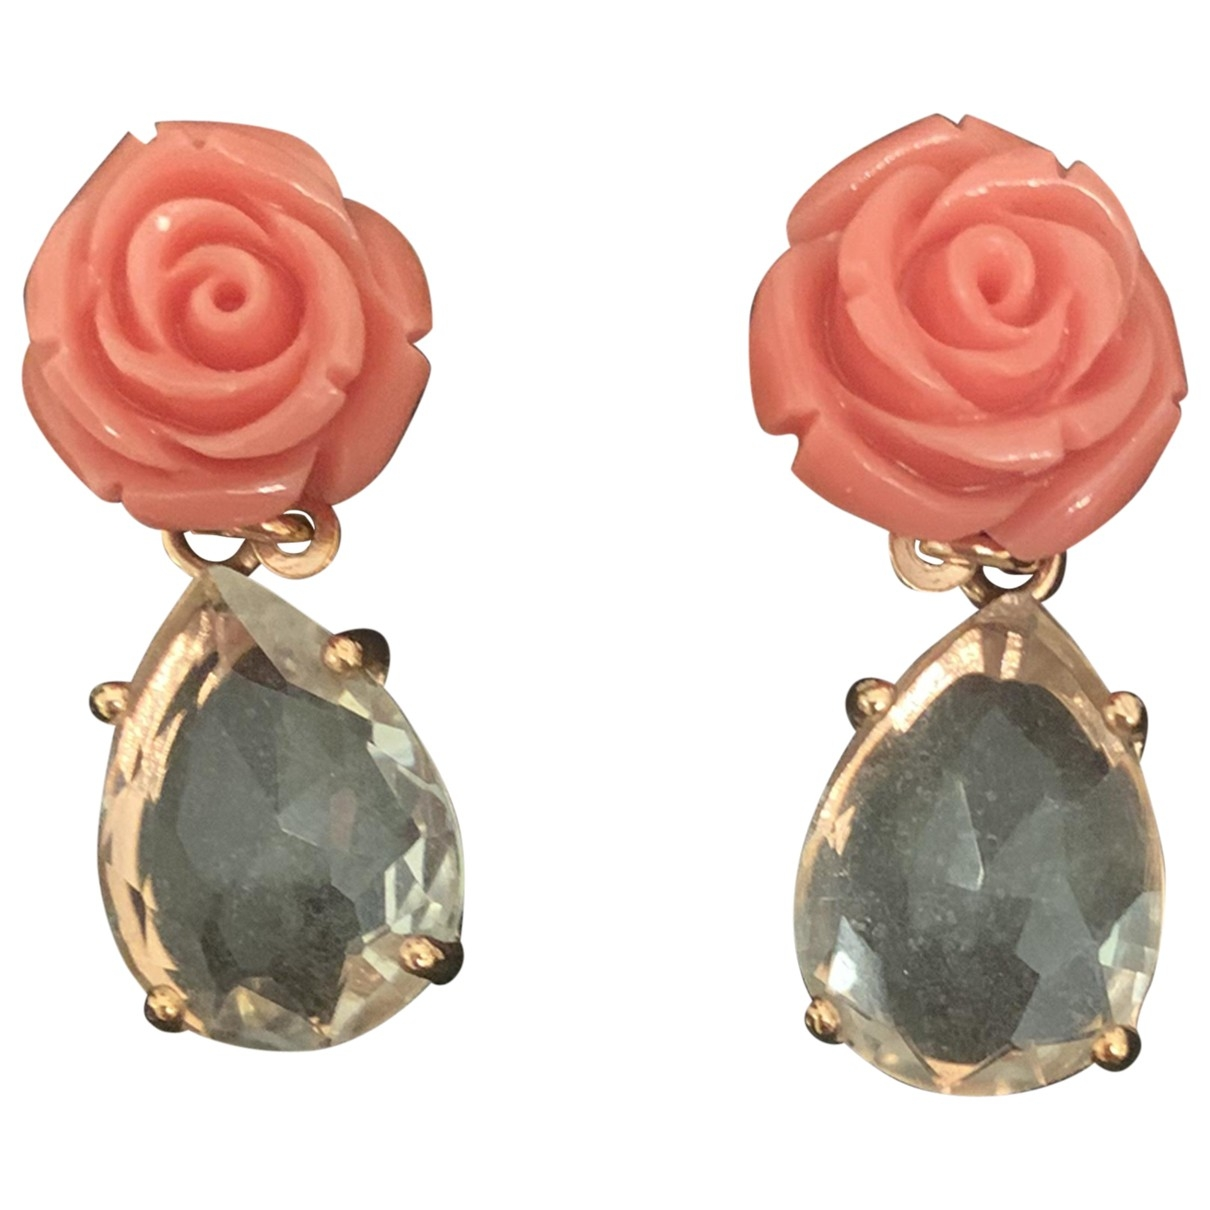 Non Signe / Unsigned Motifs Floraux OhrRing in  Rosa Metall